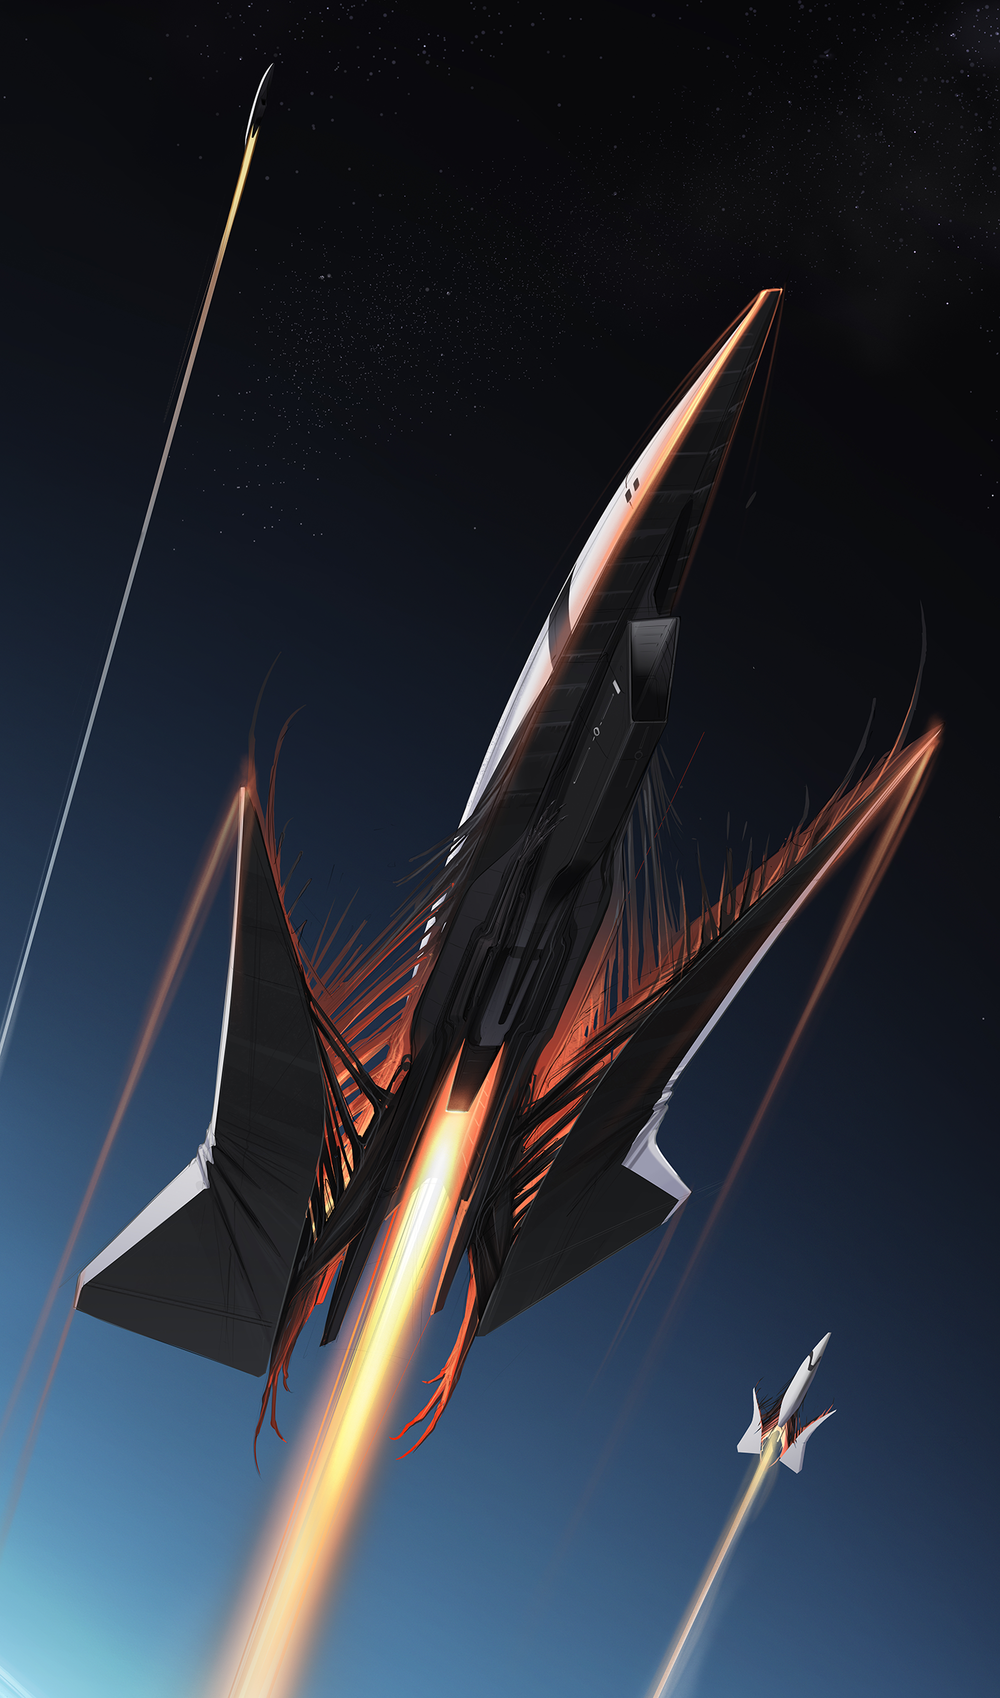 2019_01_18_hypersonics-2-cropped-1200.png